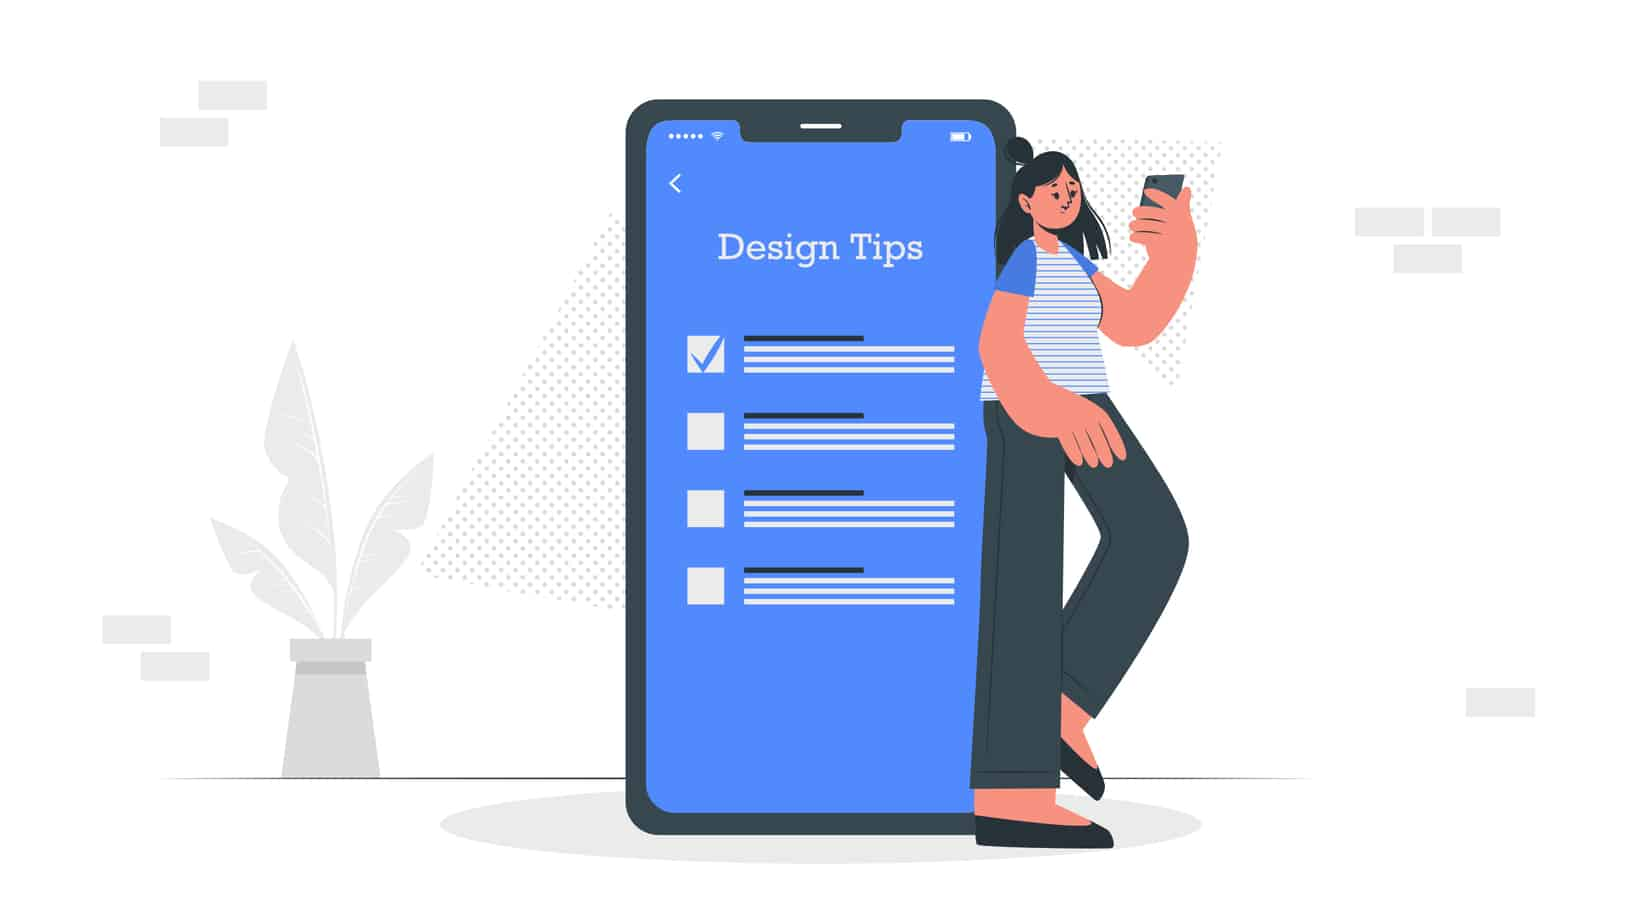 10 Design Tips to Make Your Mobile App Steal the Show